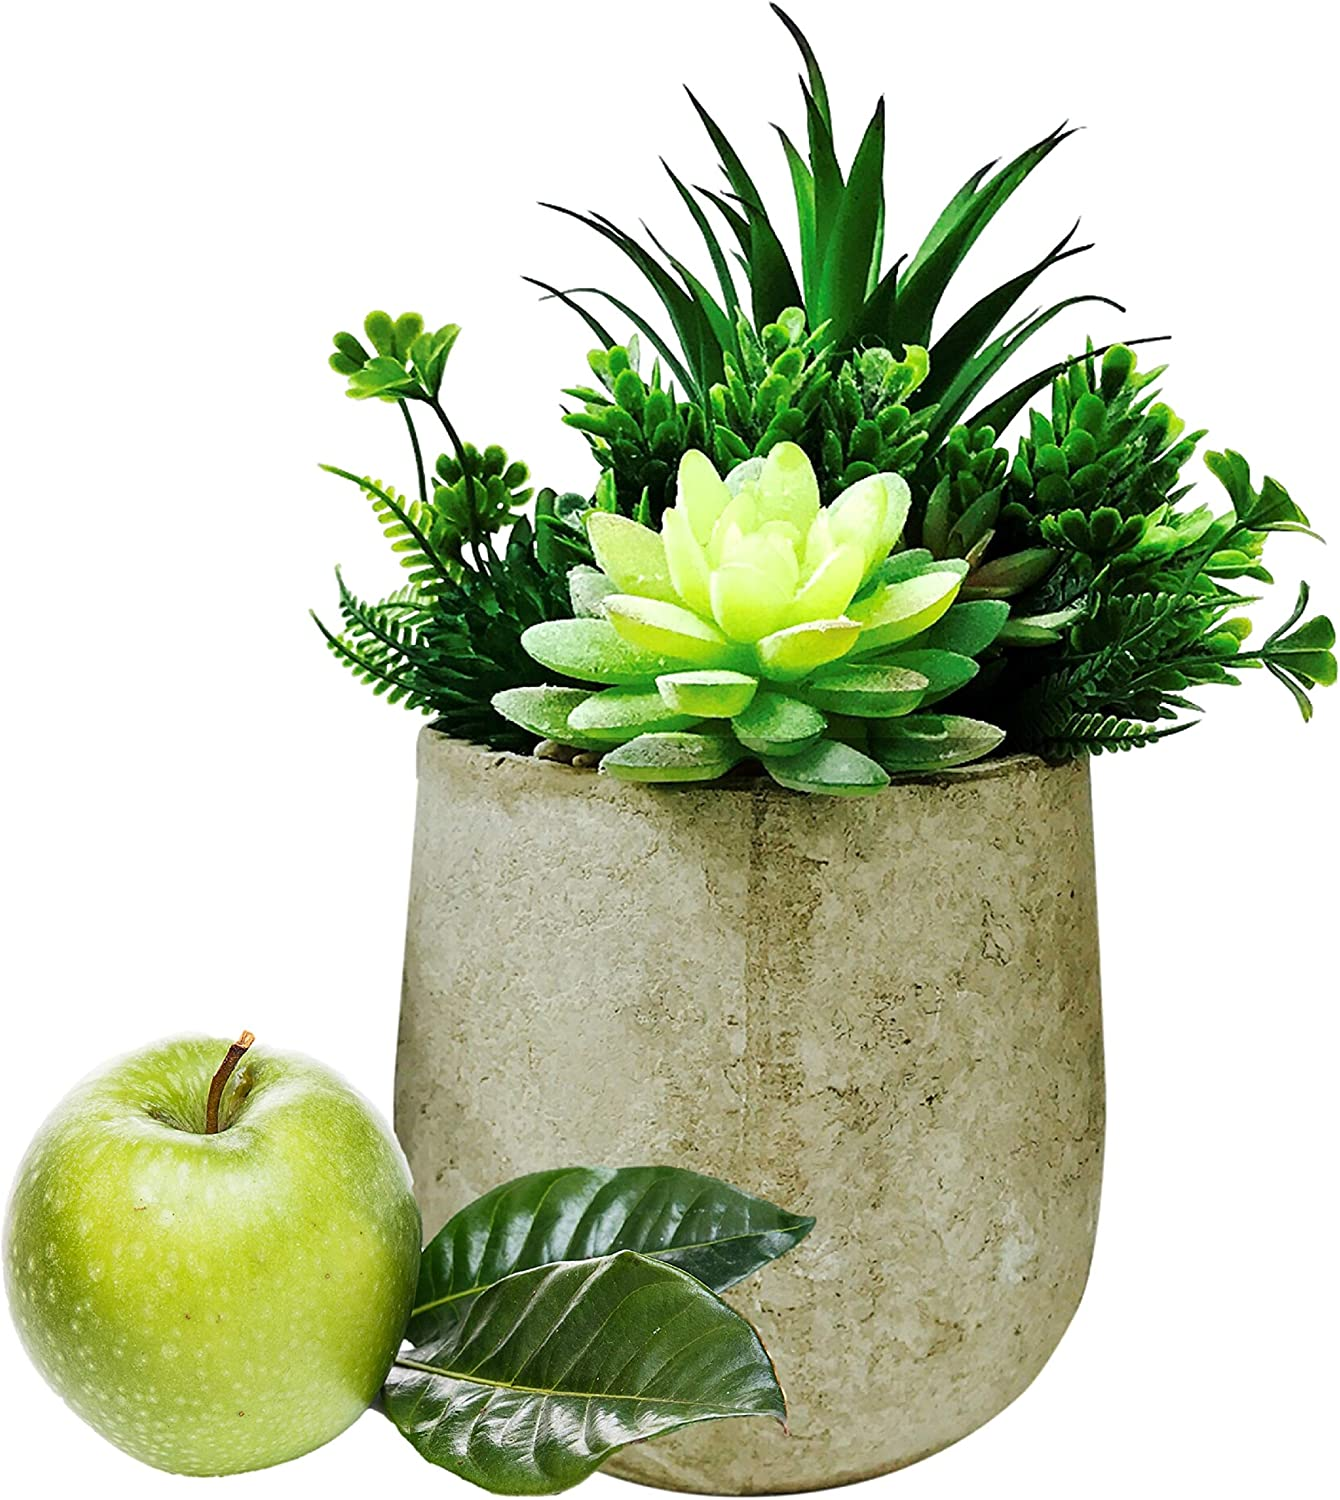 Green Artificial Potted Plants - Artificial Eucalyptus Plants Mixed with Artificial Succulent Plants in Rustic Pot, Potted Fake Plants Faux Eucalyptus for Home & Wedding Decor, Office Desk